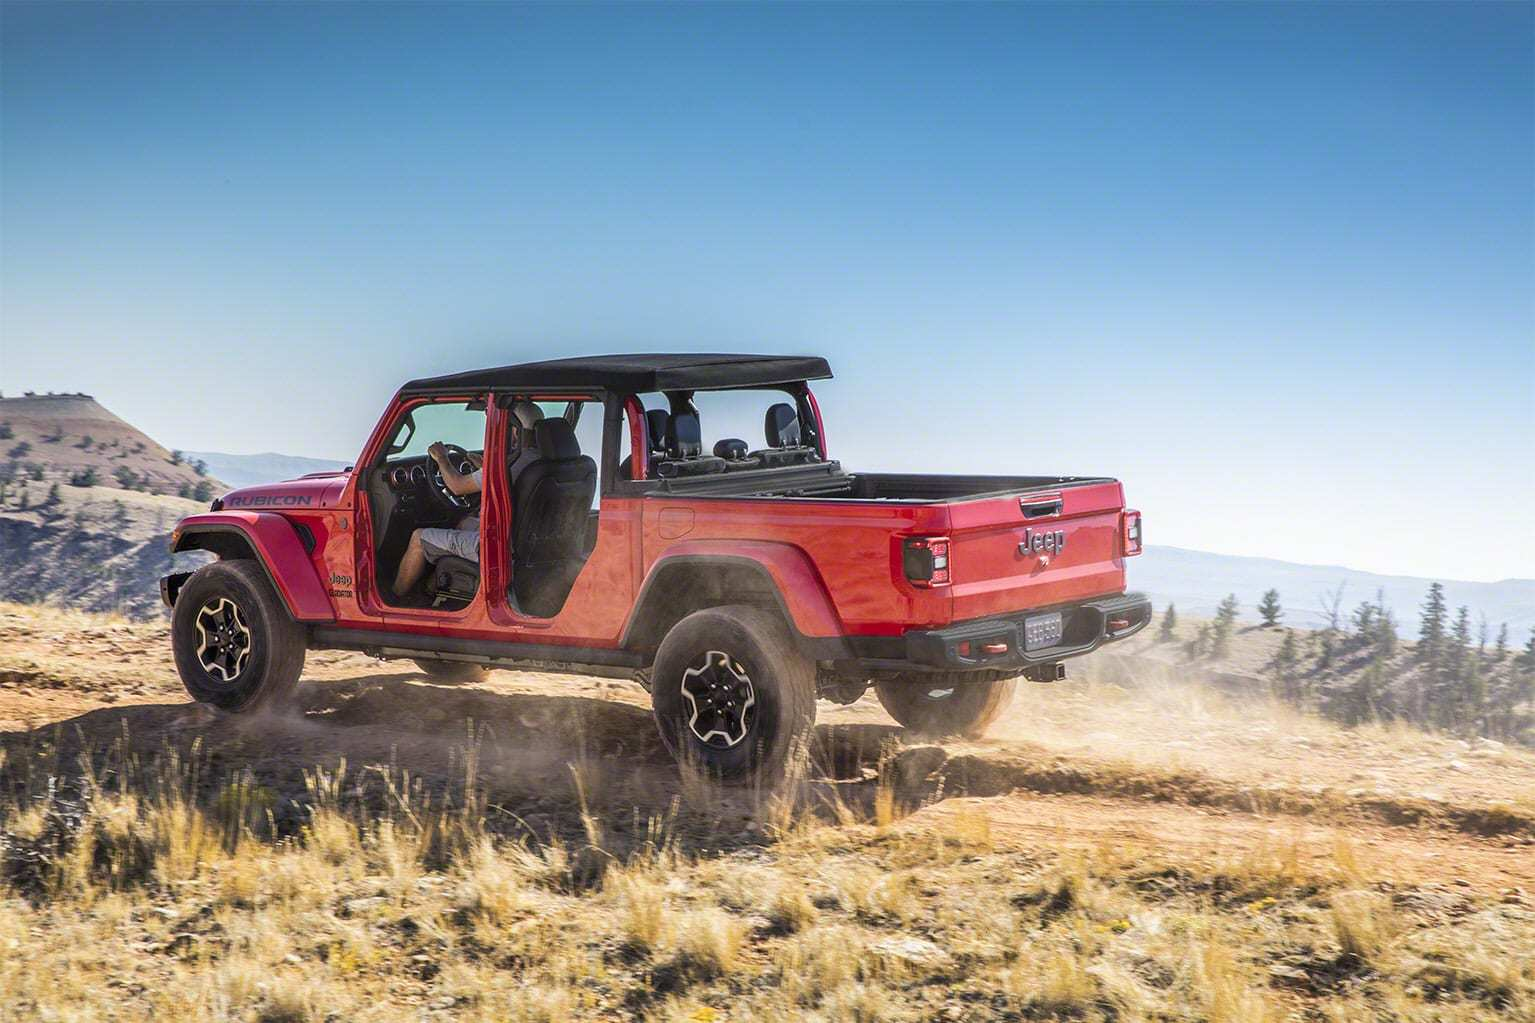 22 Great Jeep Wrangler Pickup 2020 First Drive for Jeep Wrangler Pickup 2020